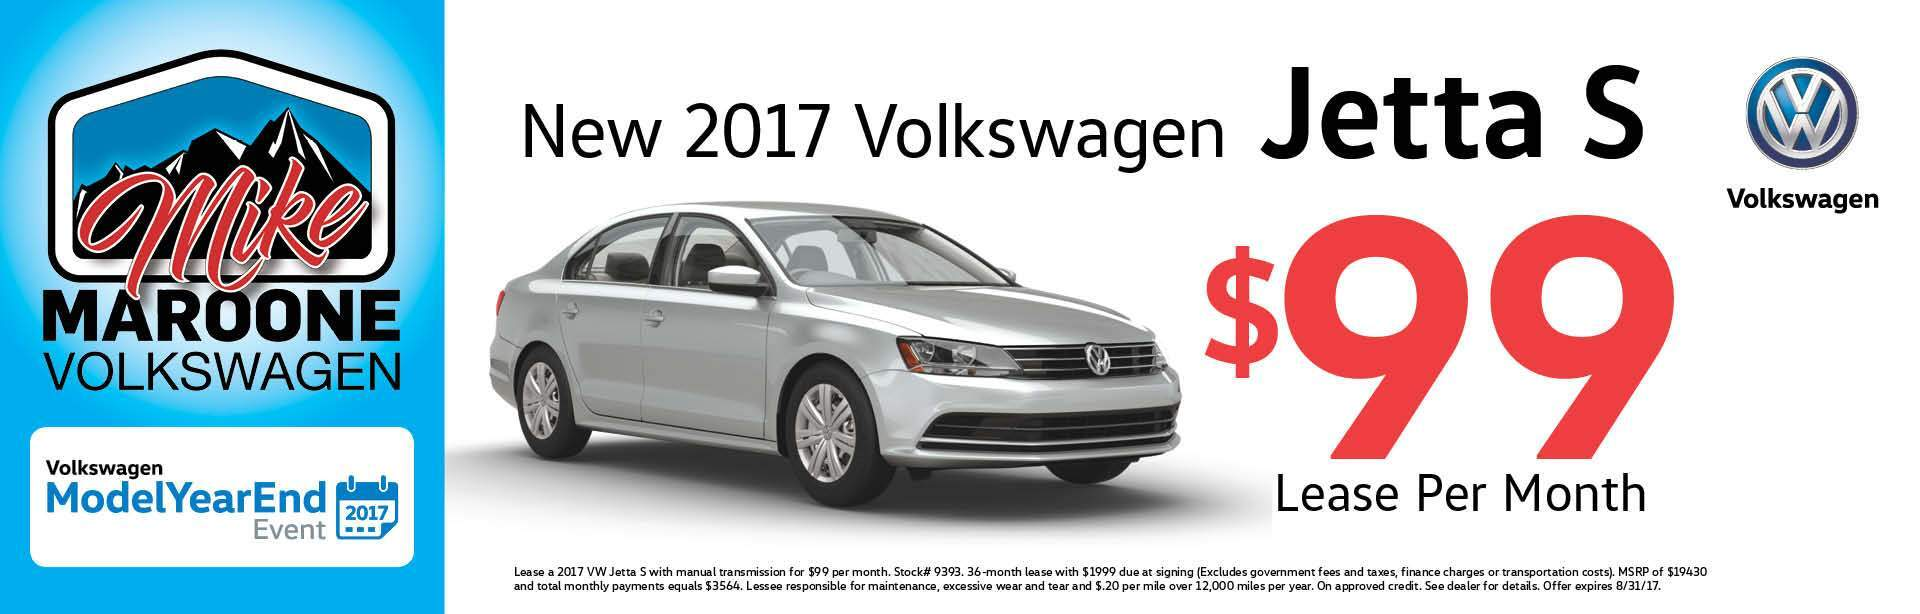 2017 VW Jetta S Colorado Springs